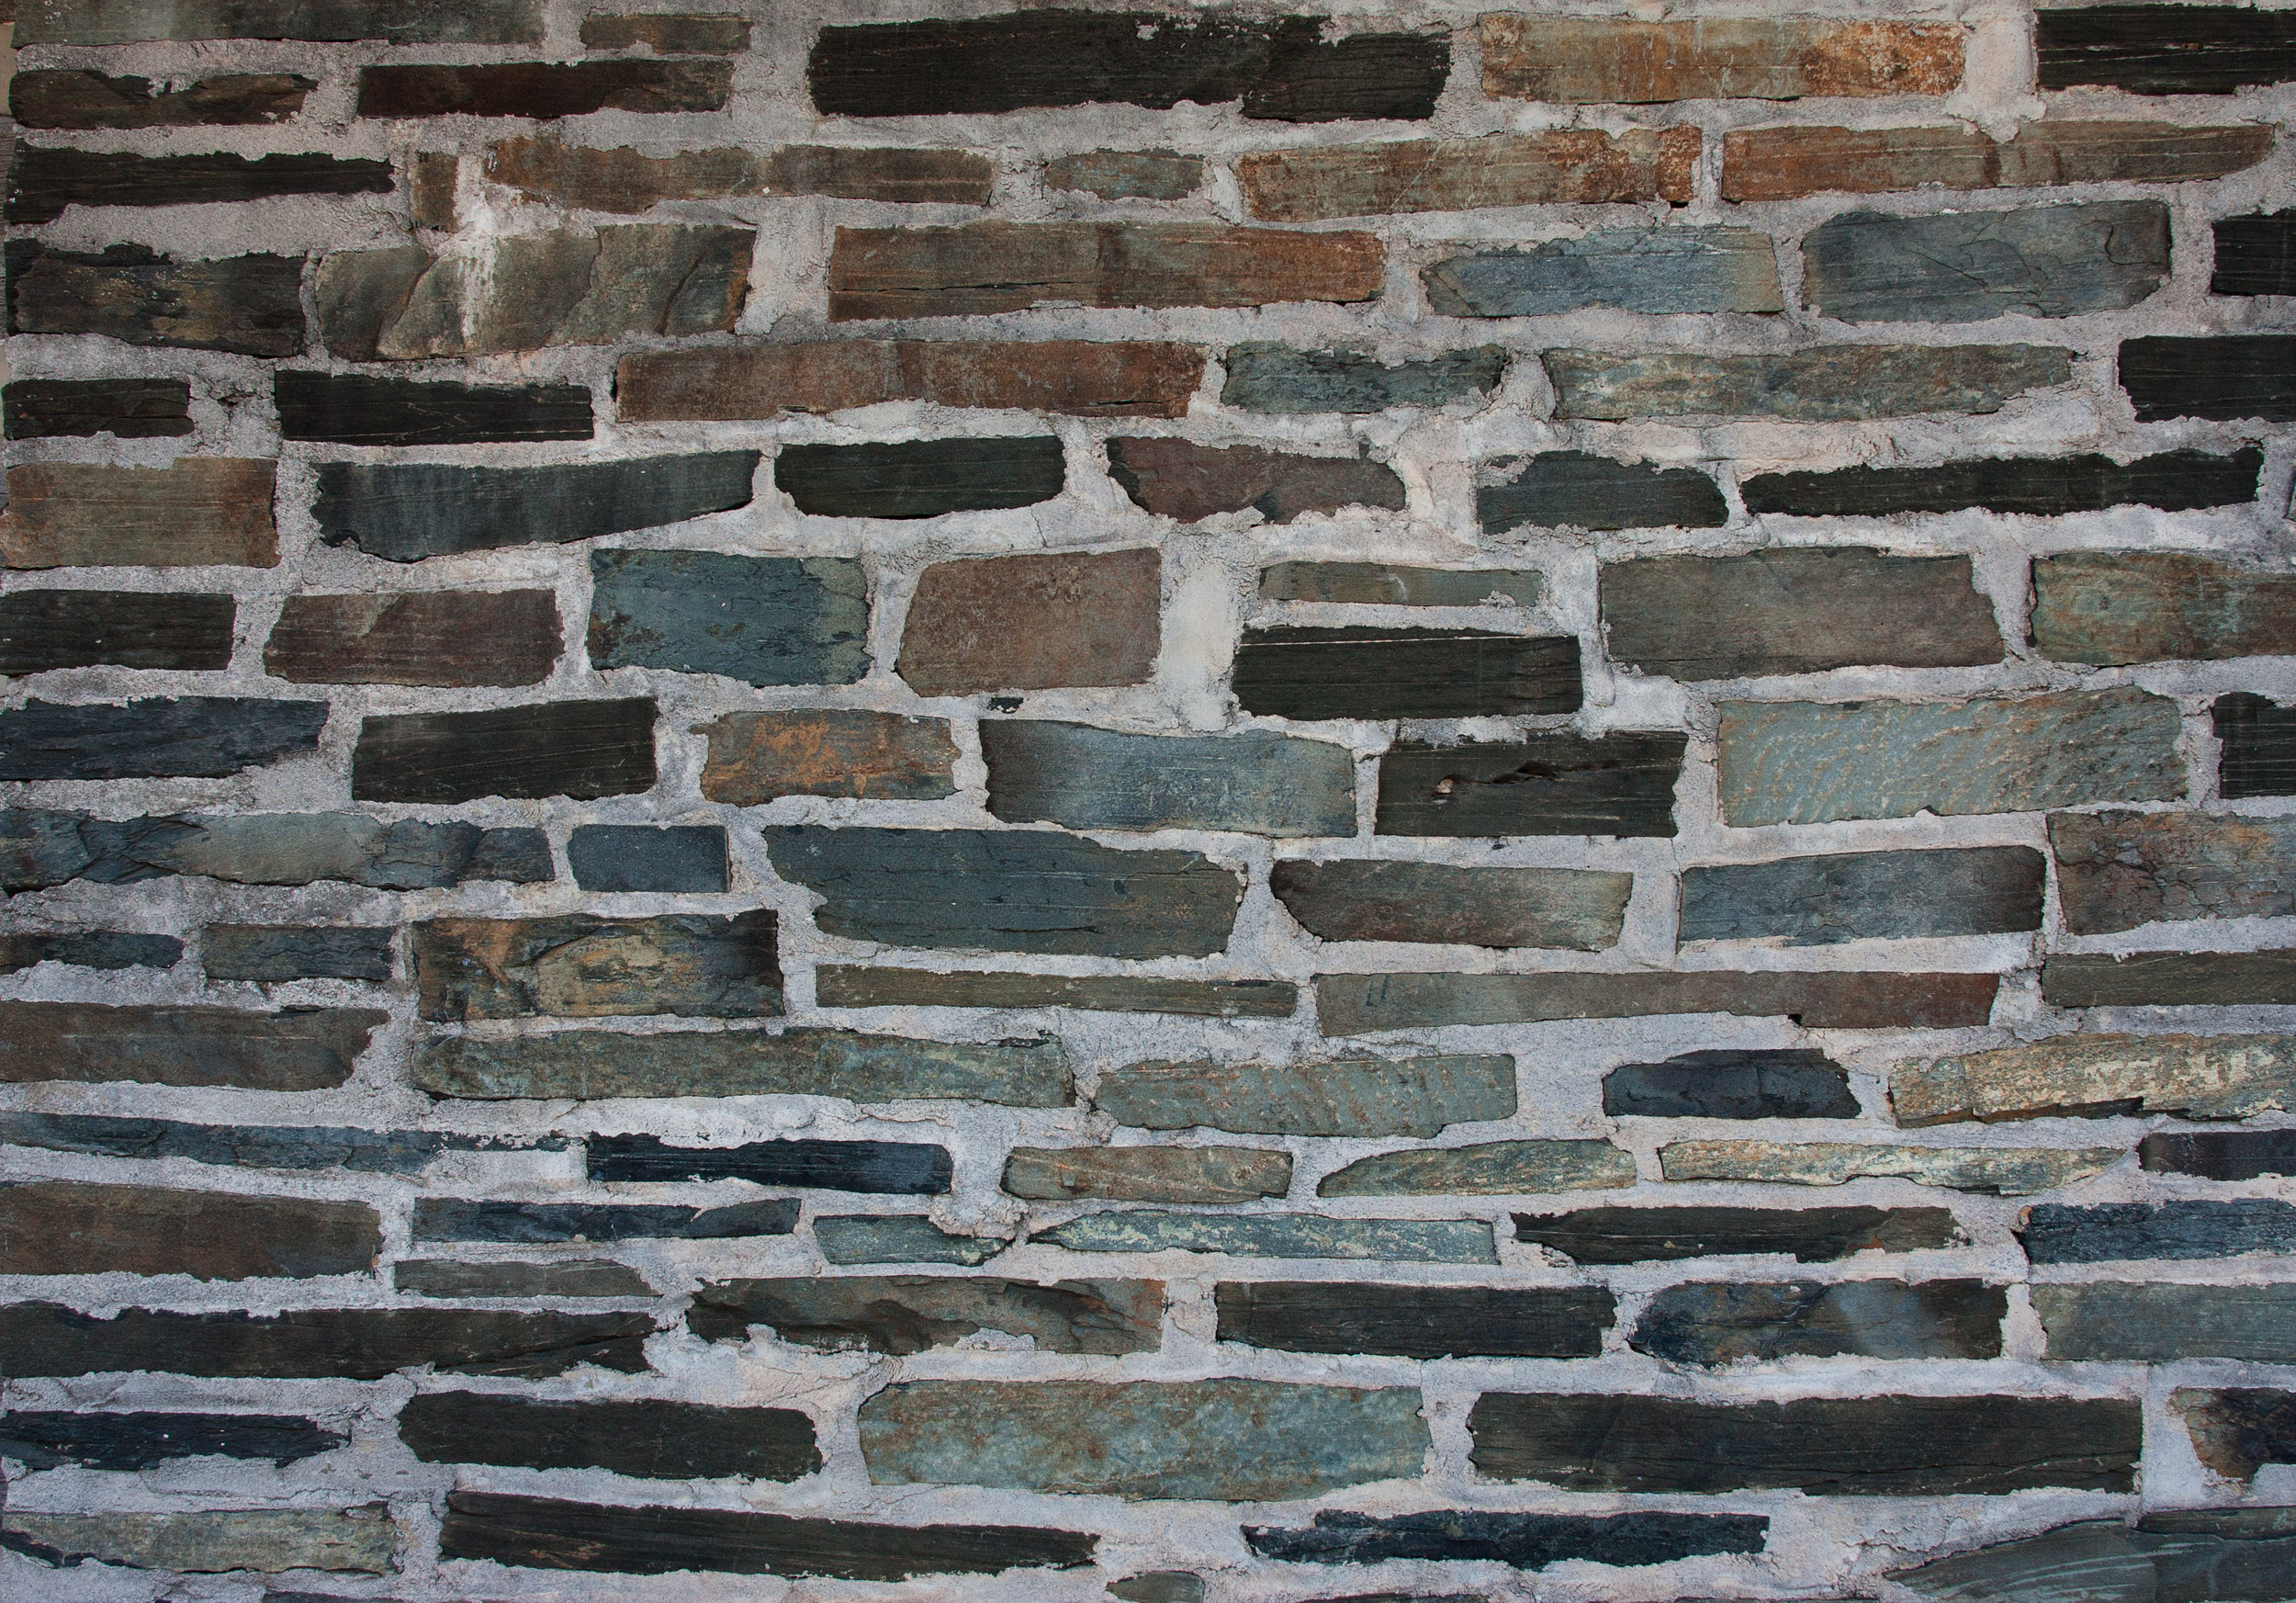 Stone Wall Textures 2500x1745